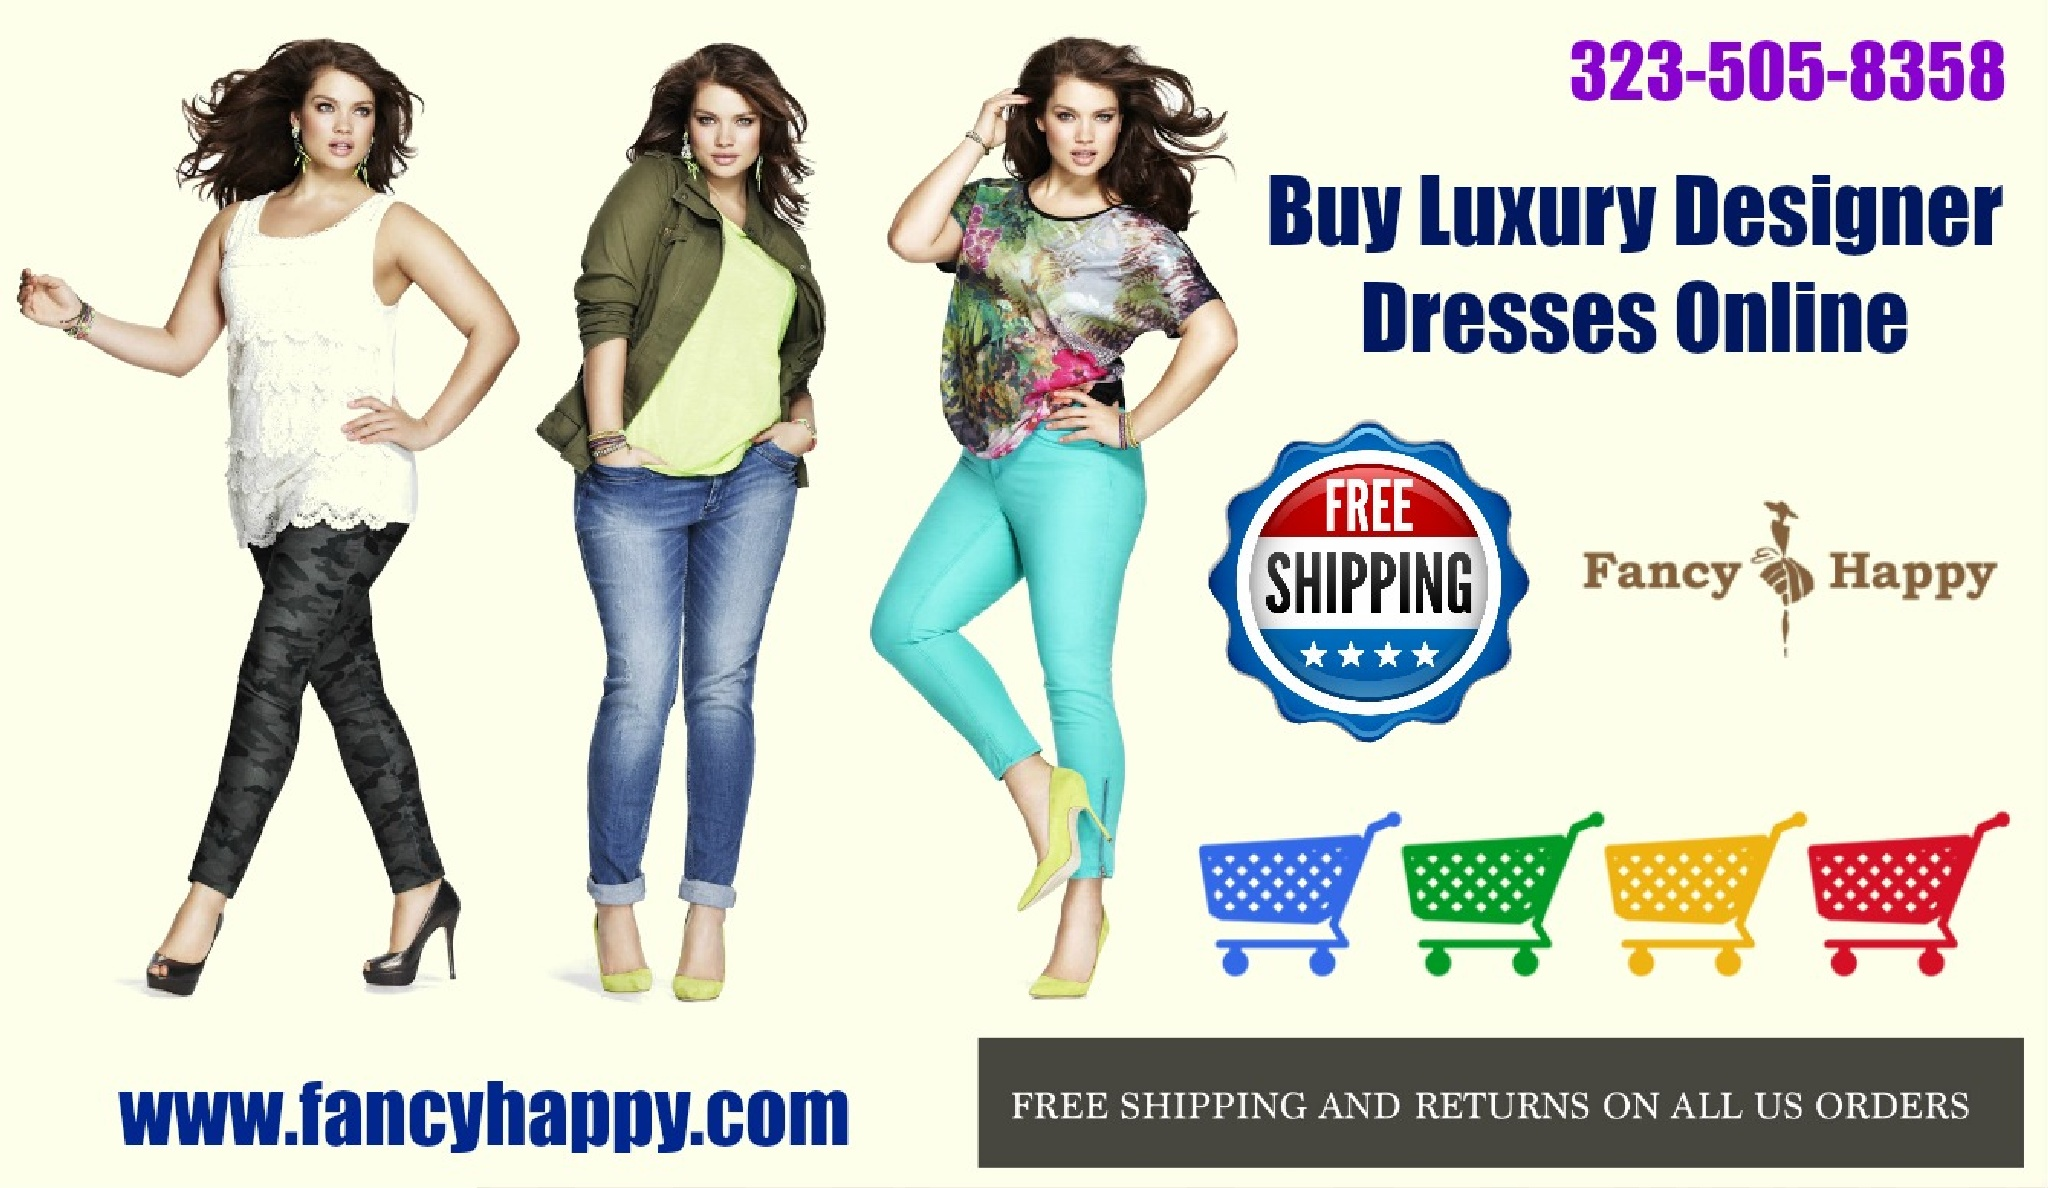 Buy Designer Dresses Online by fancyhappy